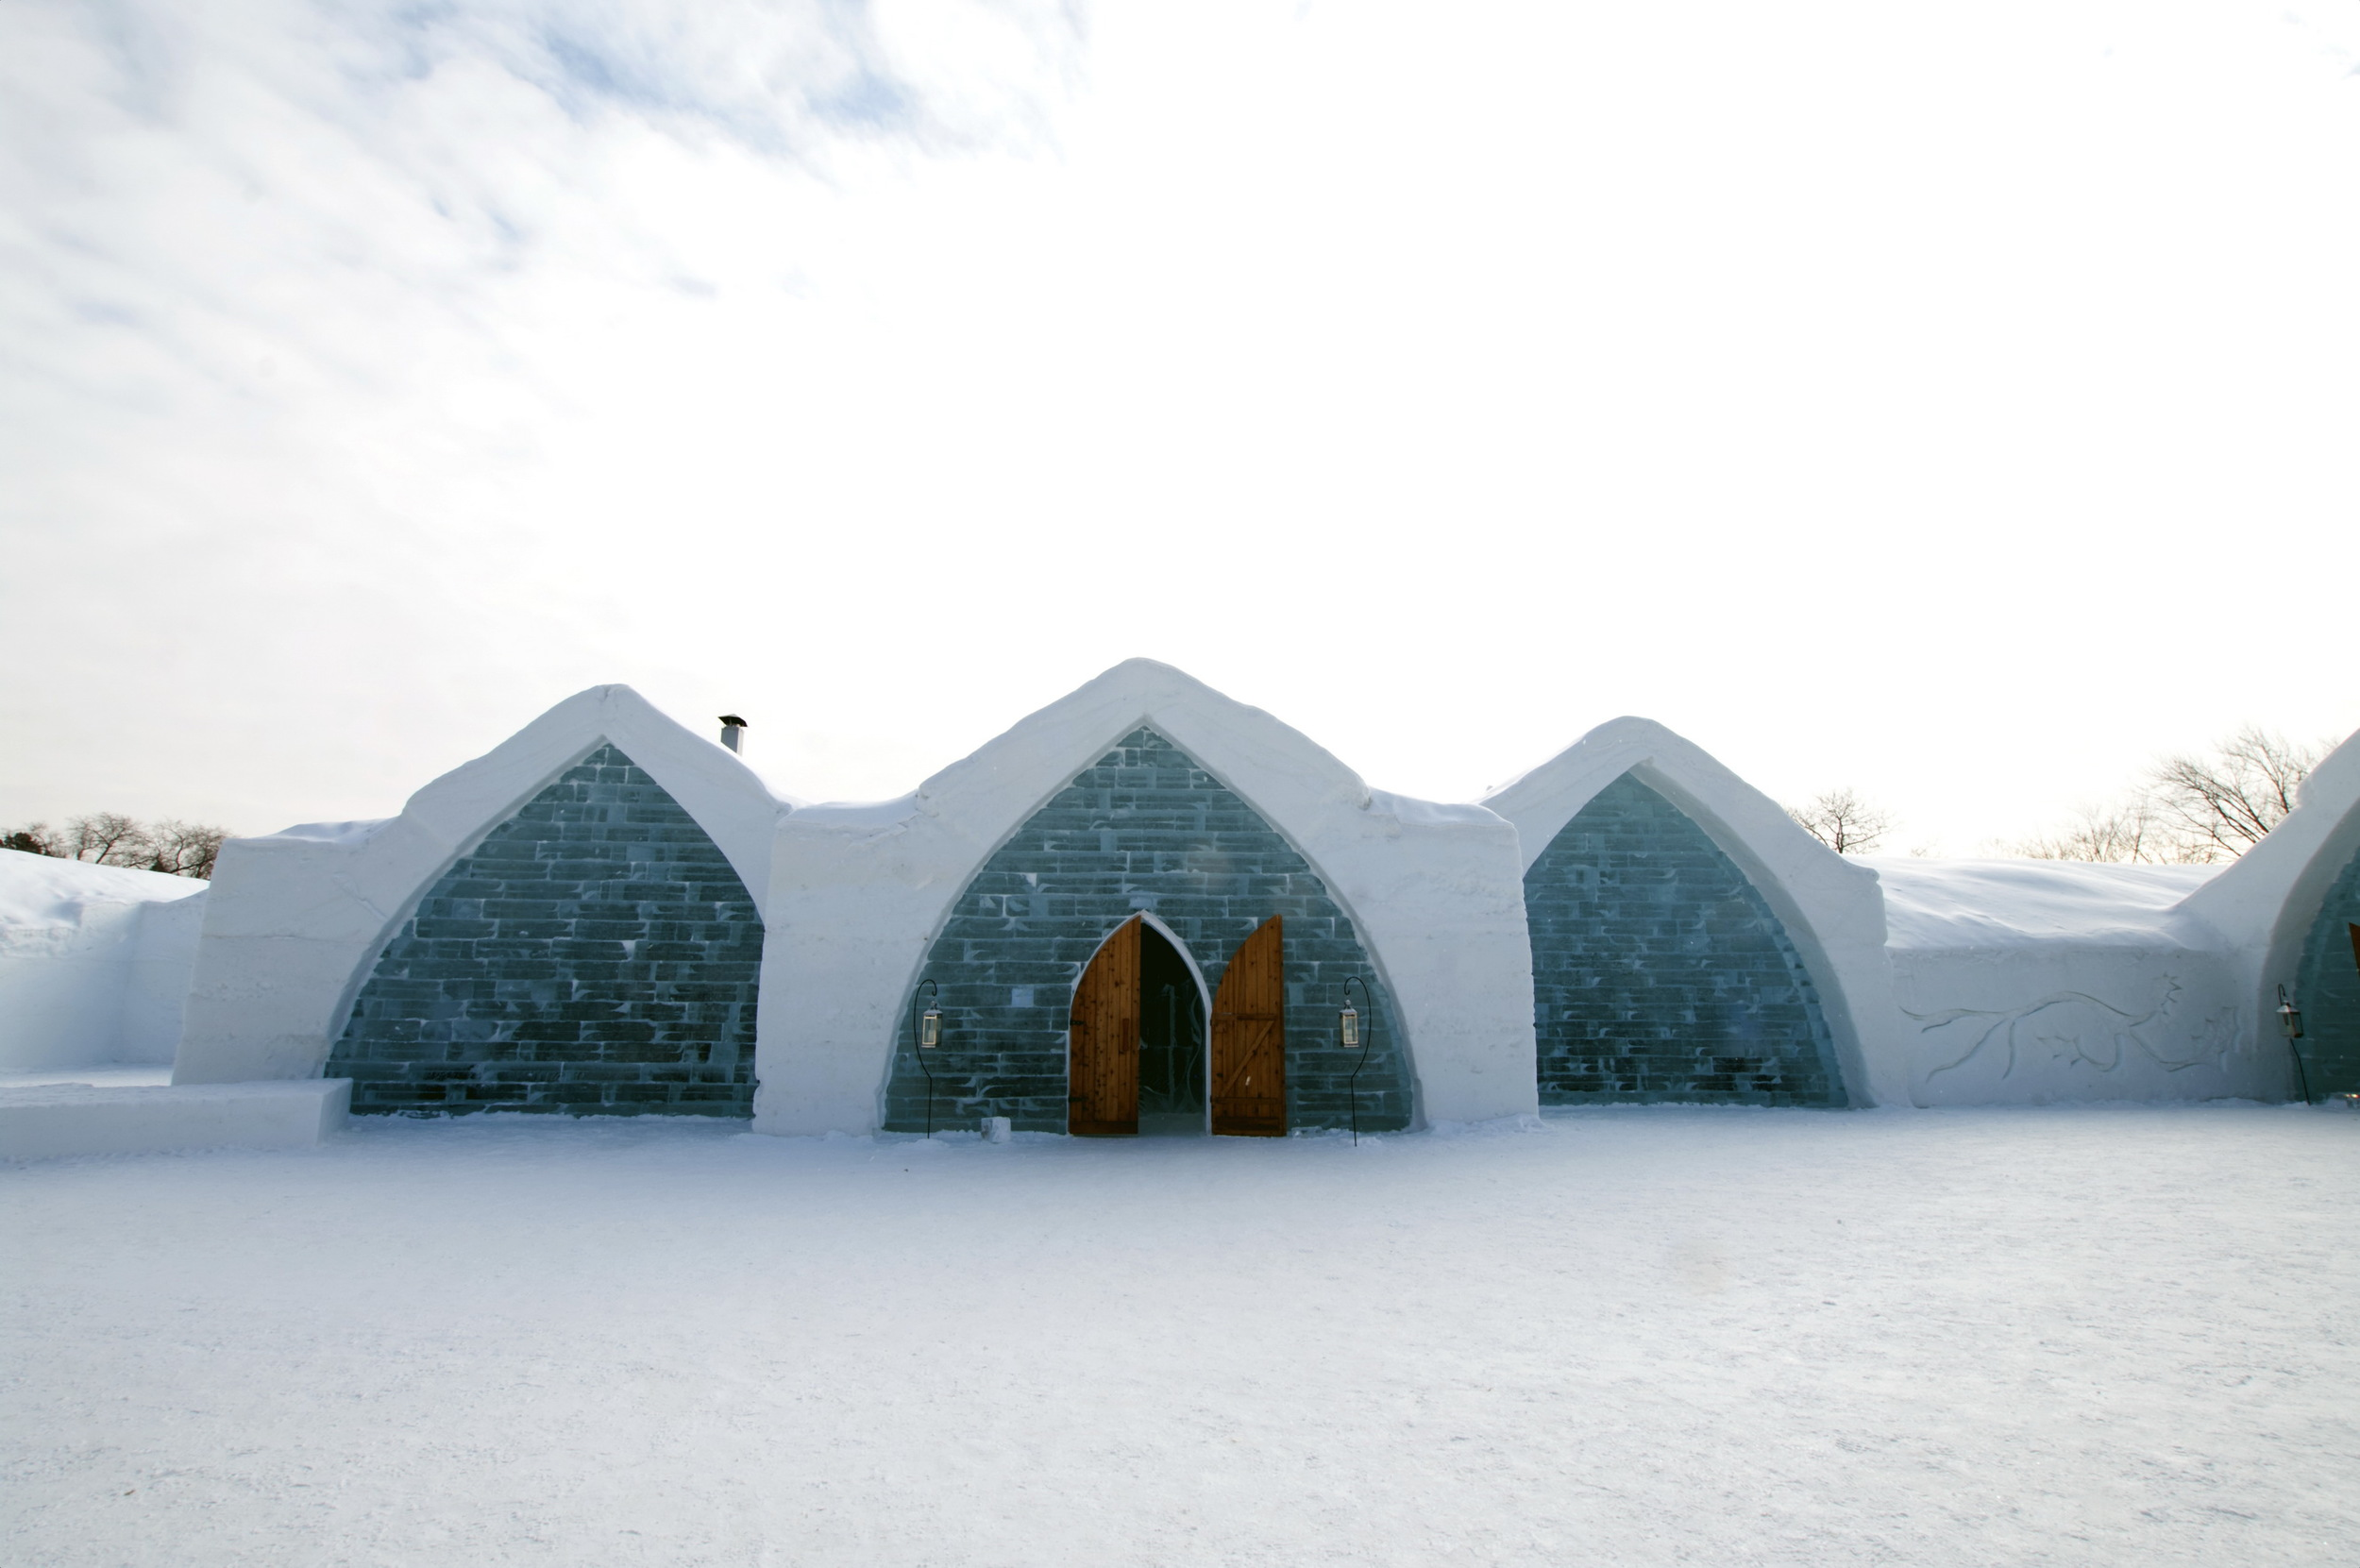 Image property of Hotel de Glace